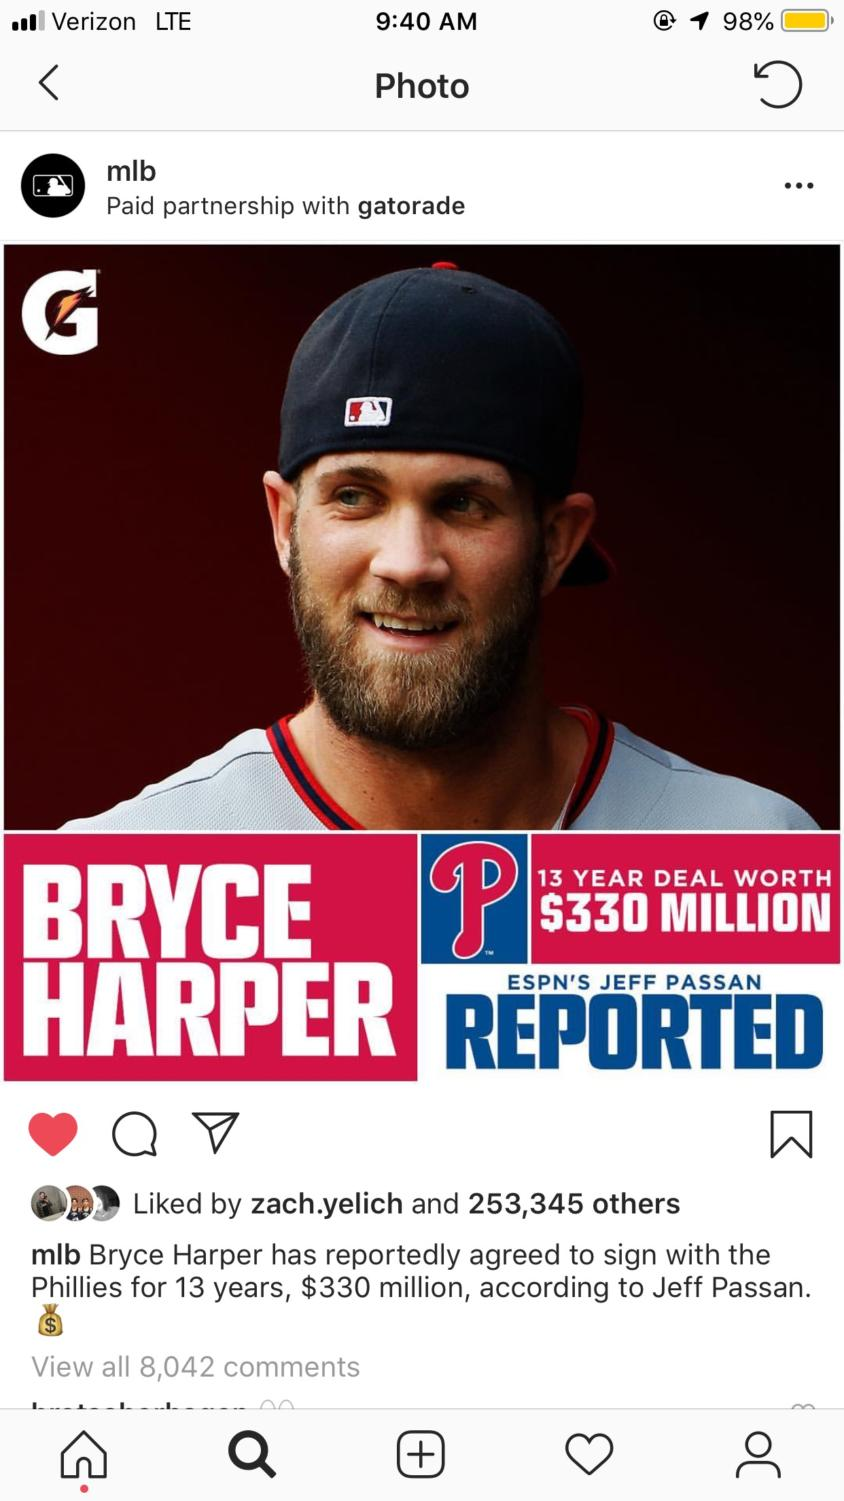 Free Agent Bryce HArper has reportedly agreed to a deal with the Philadelphia Phillies for 330 million dollars.